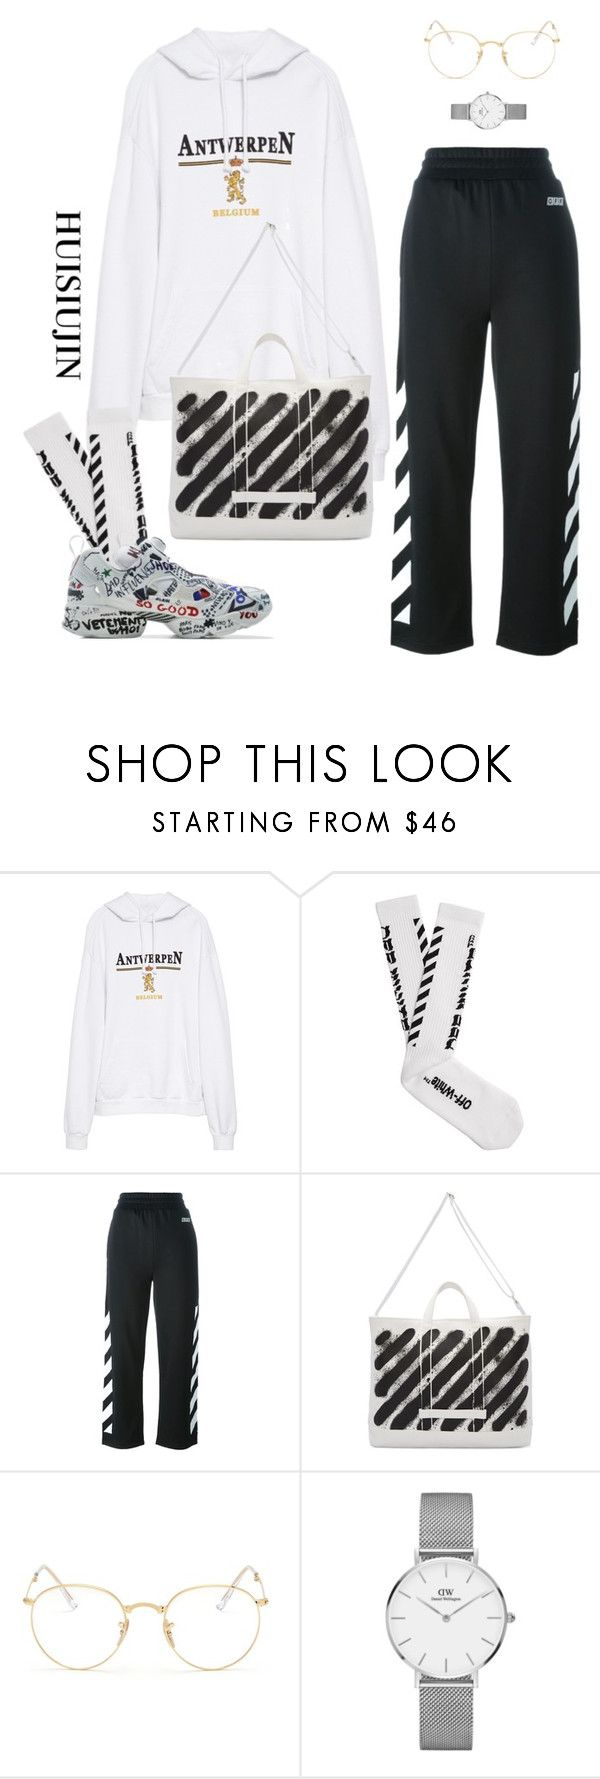 """#55"" by huisiujinxxx ❤ liked on Polyvore featuring Vetements, Off-White, Reebok, Ray-Ban and Daniel Wellington"